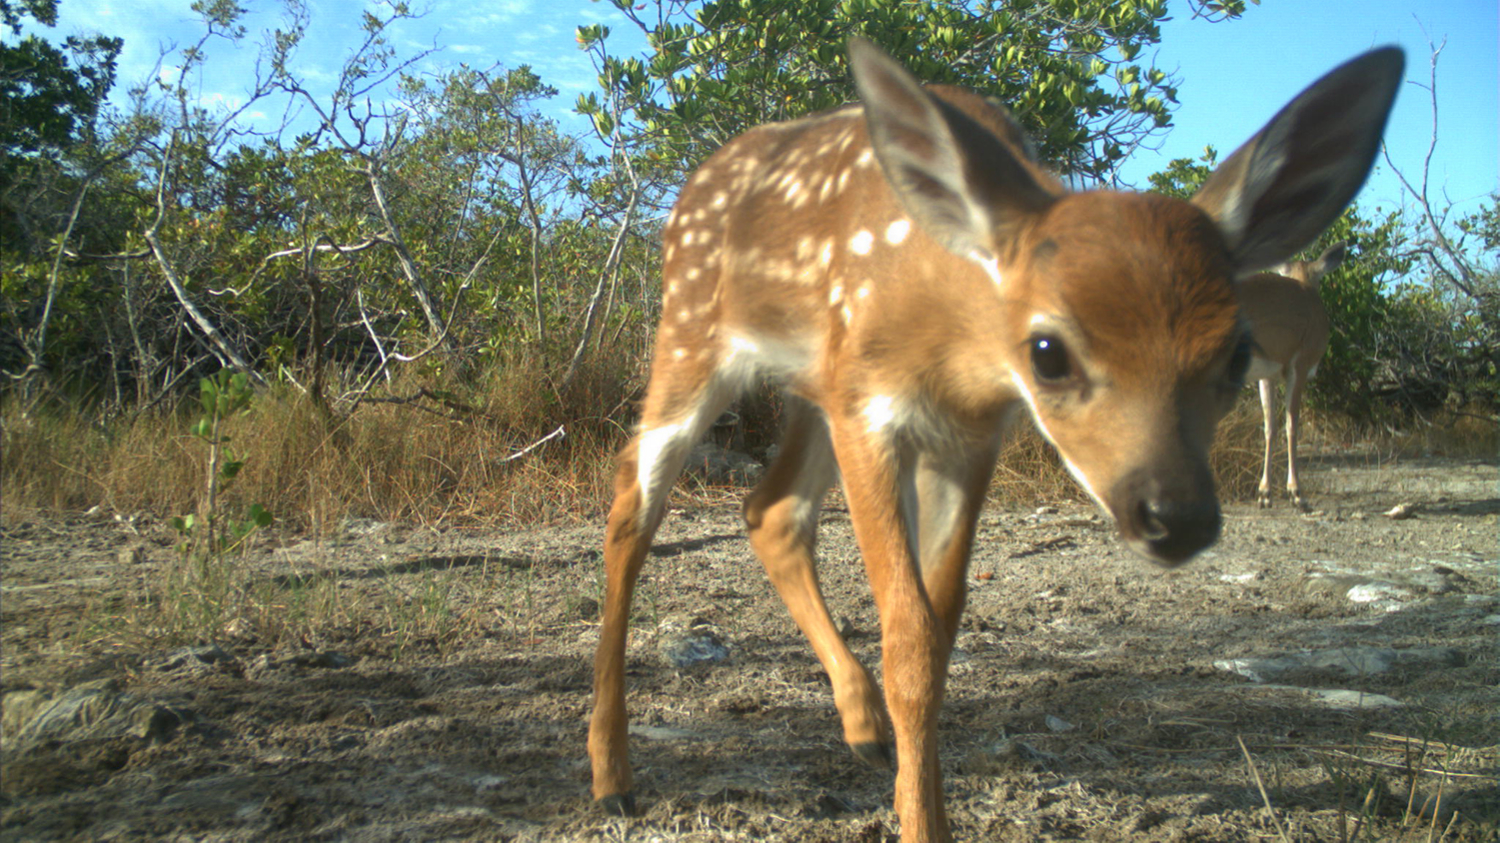 A Key deer photo approaches a camera trap in the Florida Keys.